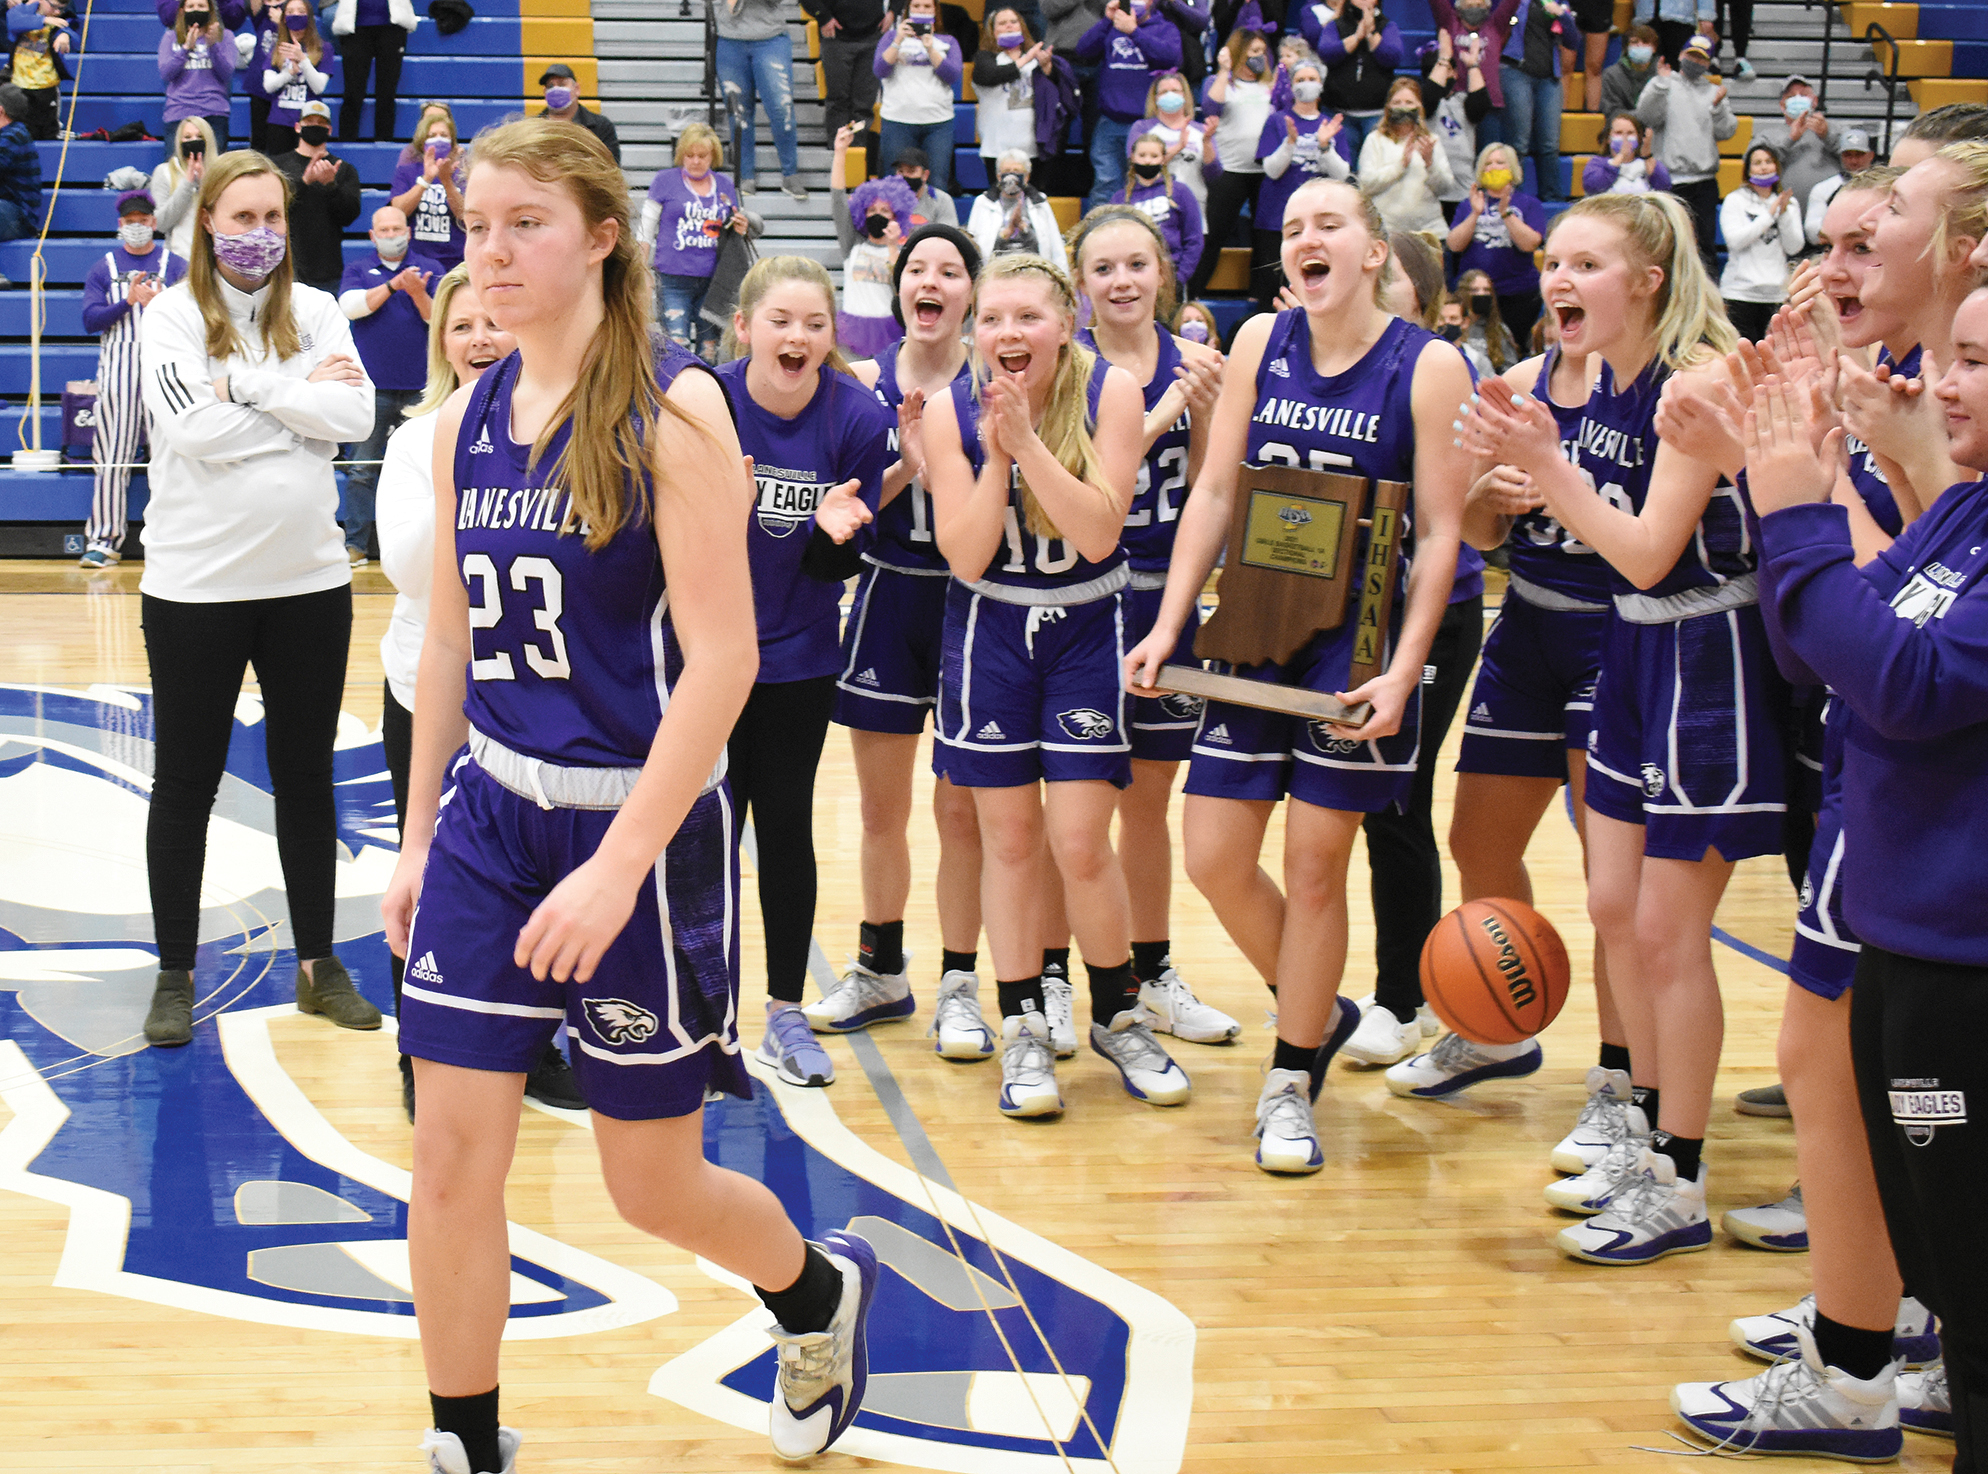 Lady Eagles soar as sectional champions